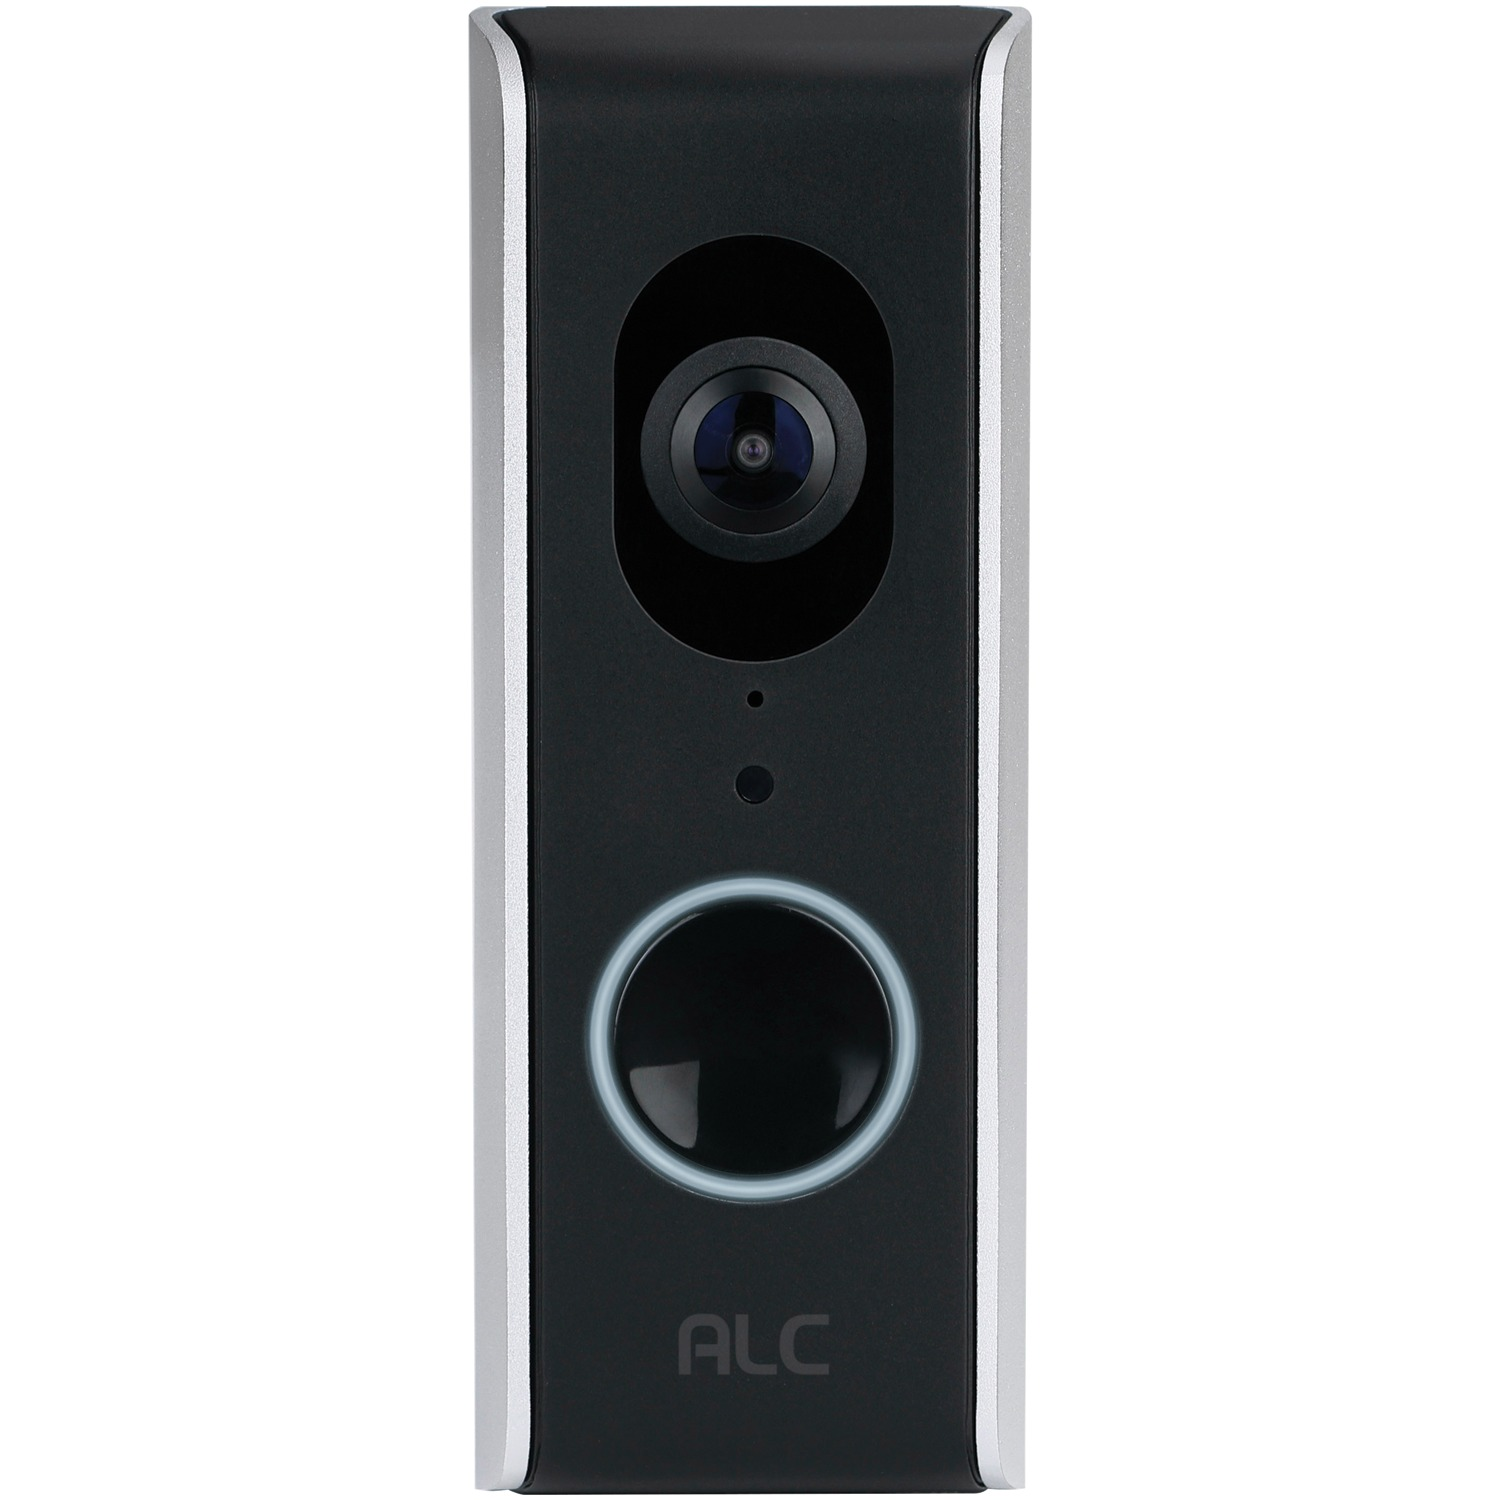 ALC AWF71D SightHD Video Doorbell 16gb memory storage and FREE cloud storage **no monthly fees** 1080p Full HD